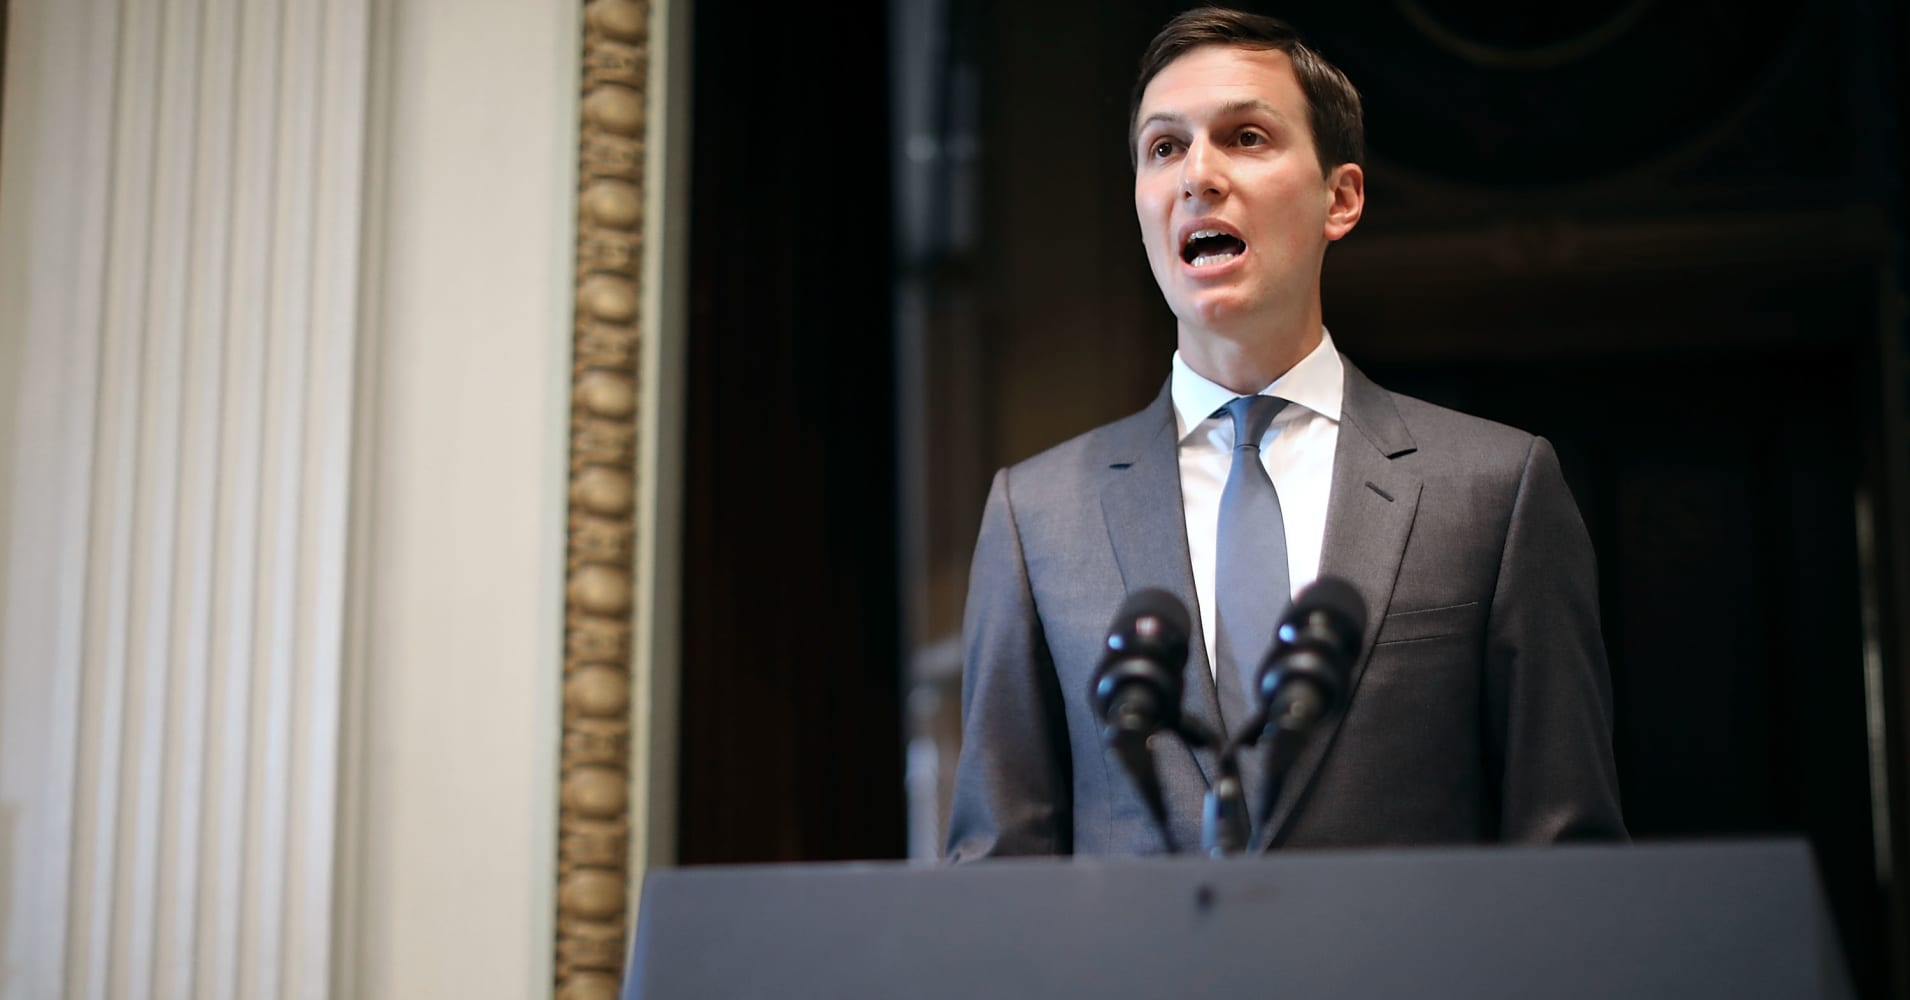 Kushner adds at least $10 million in assets he 'inadvertently omitted' to disclosure